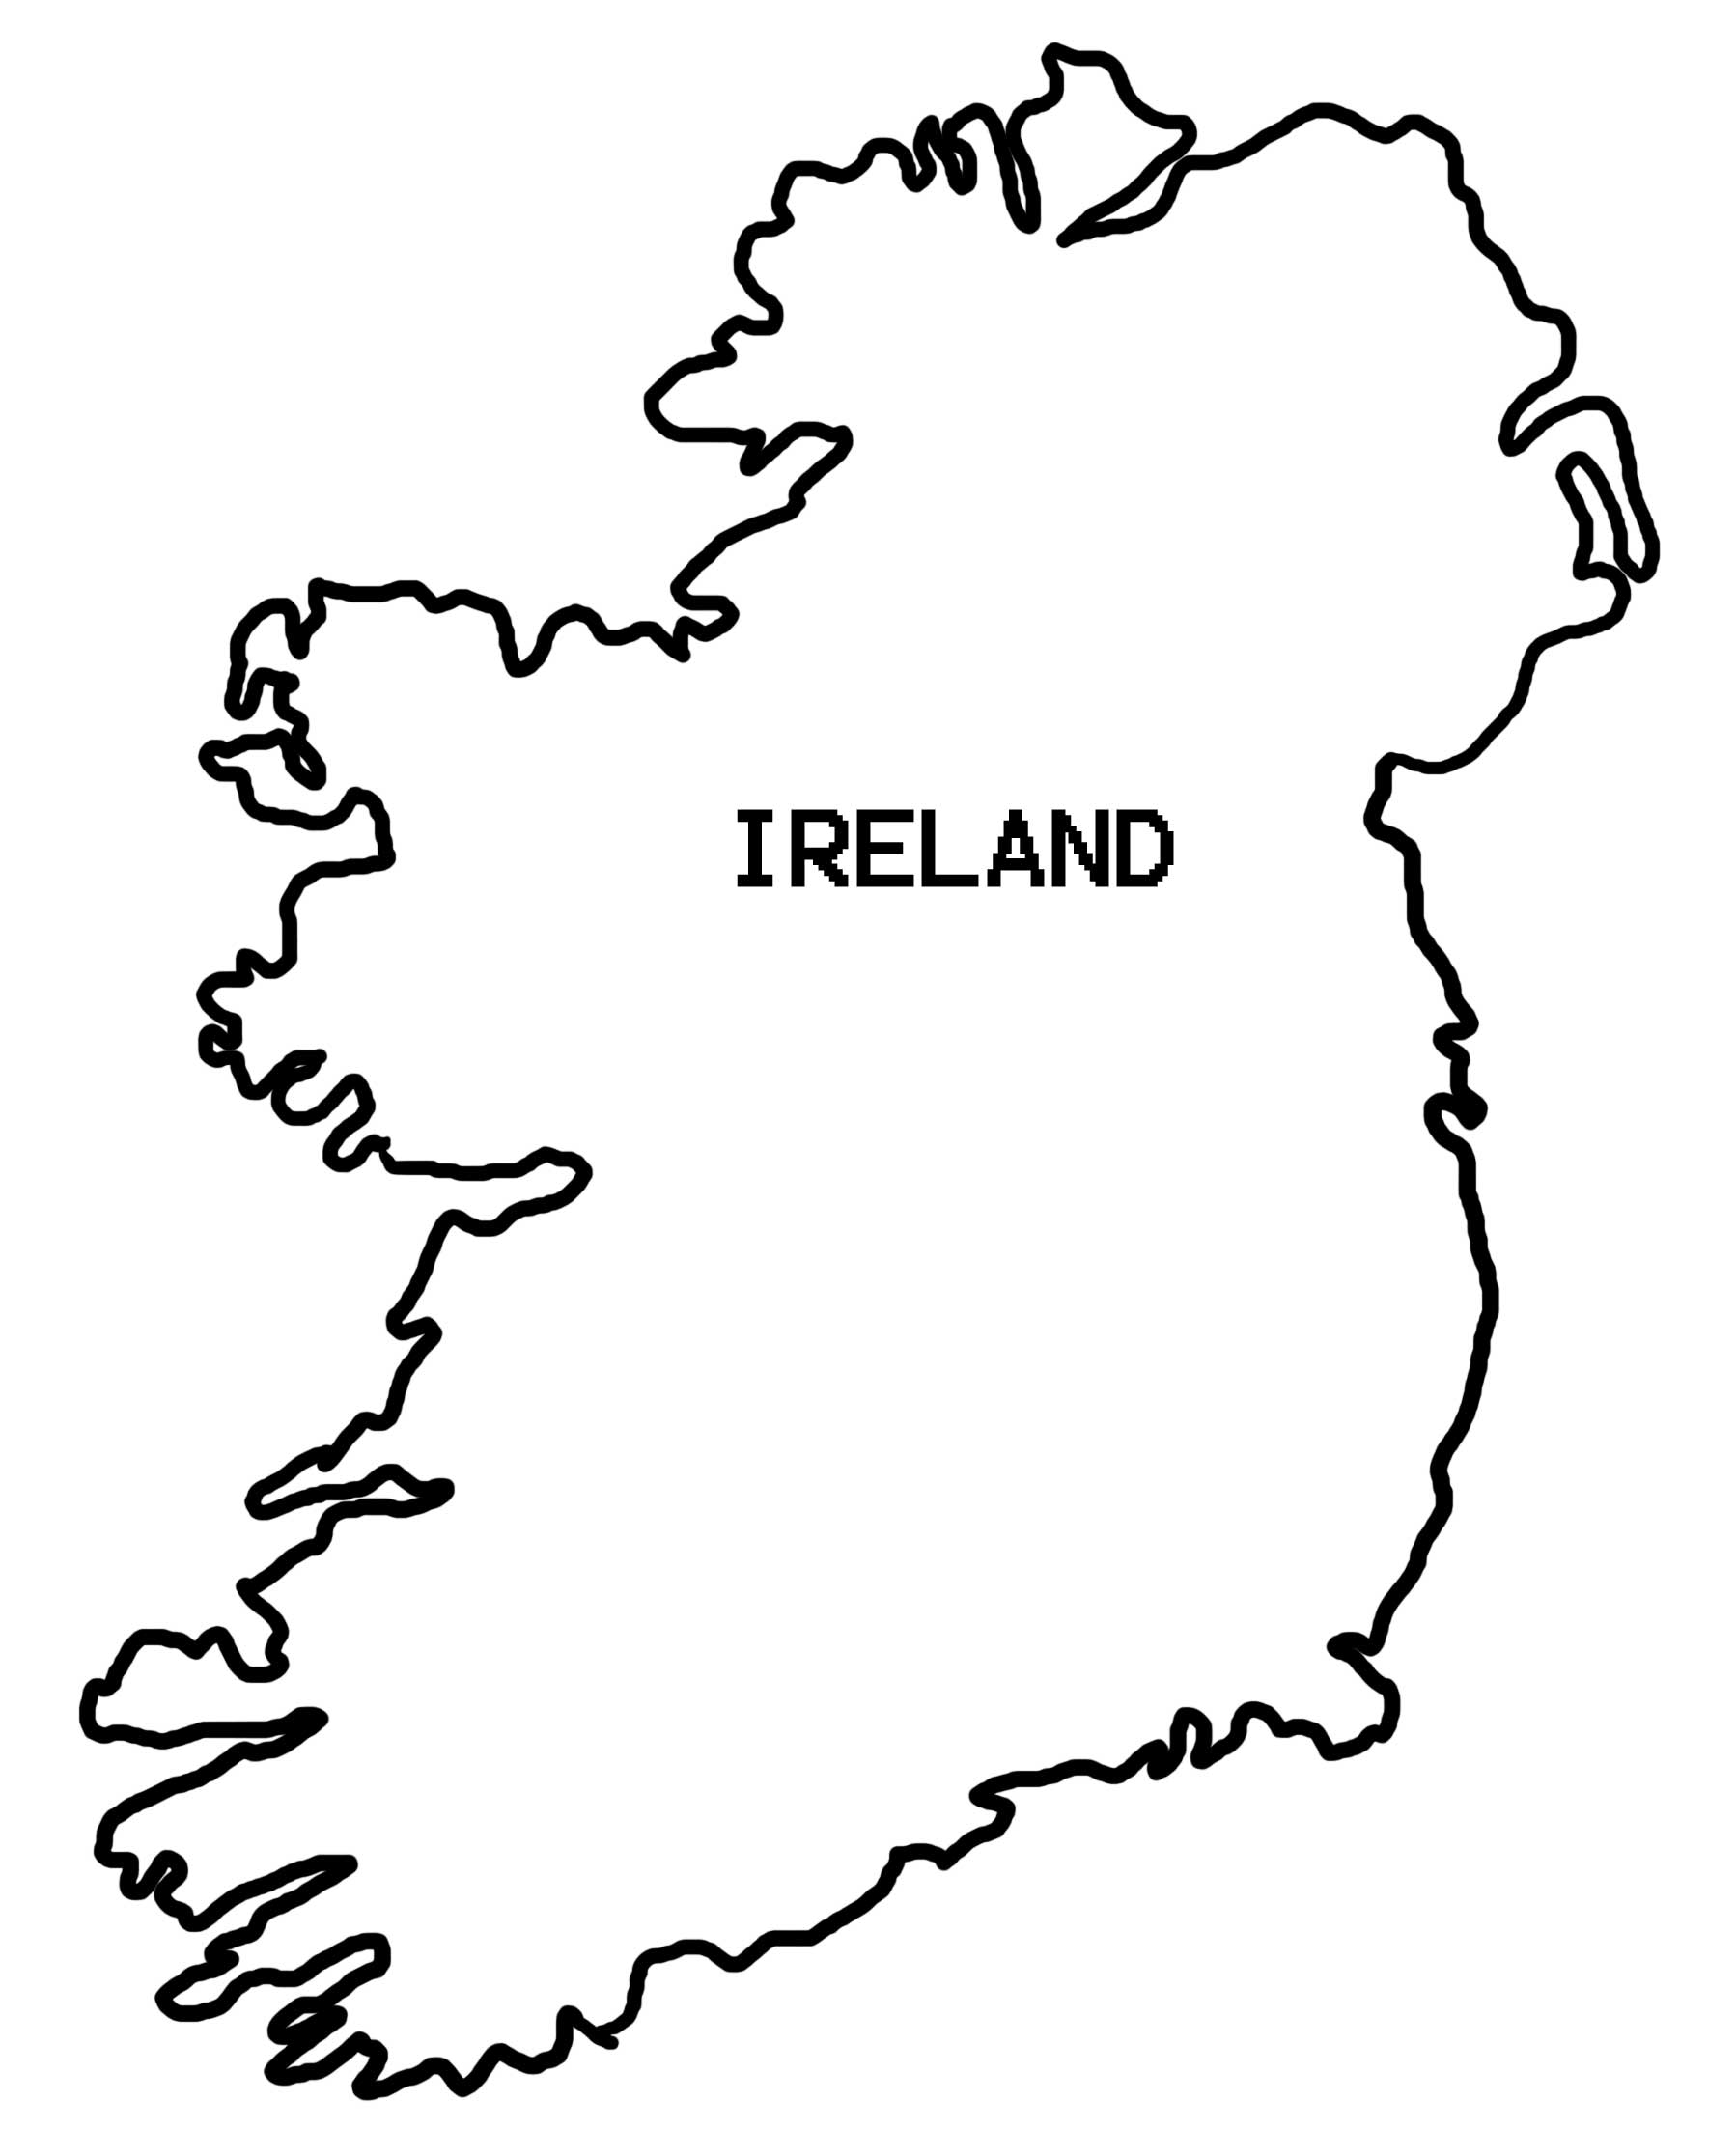 Colouring Pages Ireland : Simple map of ireland colouring pages